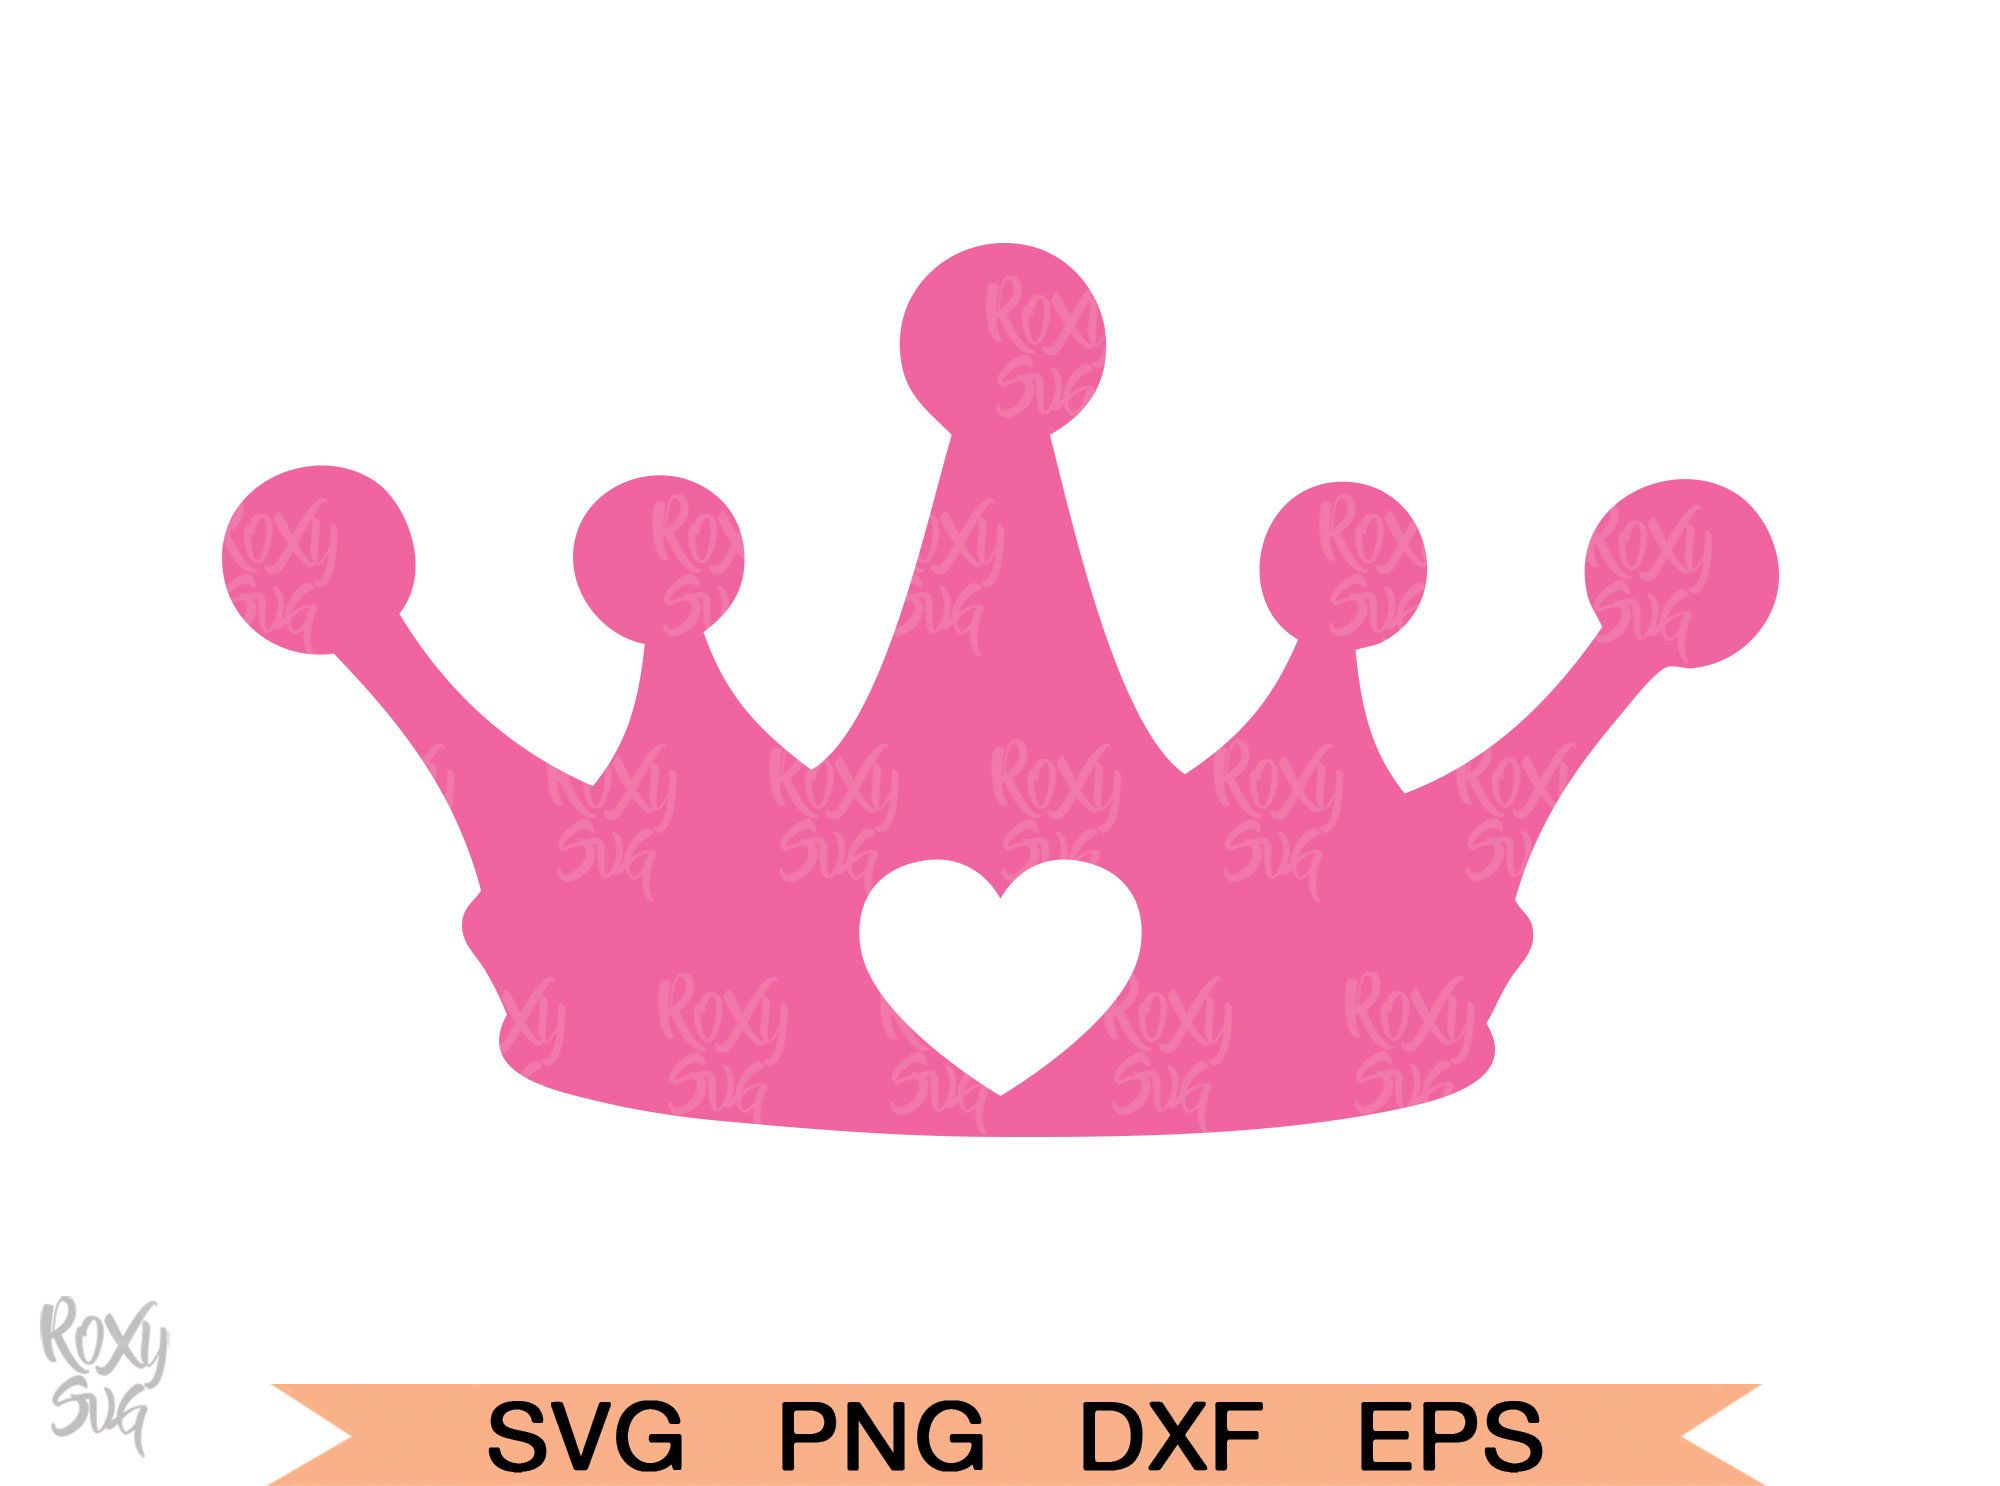 Tiara Svg Crown Svg Princess Crown Svg Crown Clipart Crown Etsy In 2020 Crown Silhouette Crown Clip Art Cricut Projects Vinyl